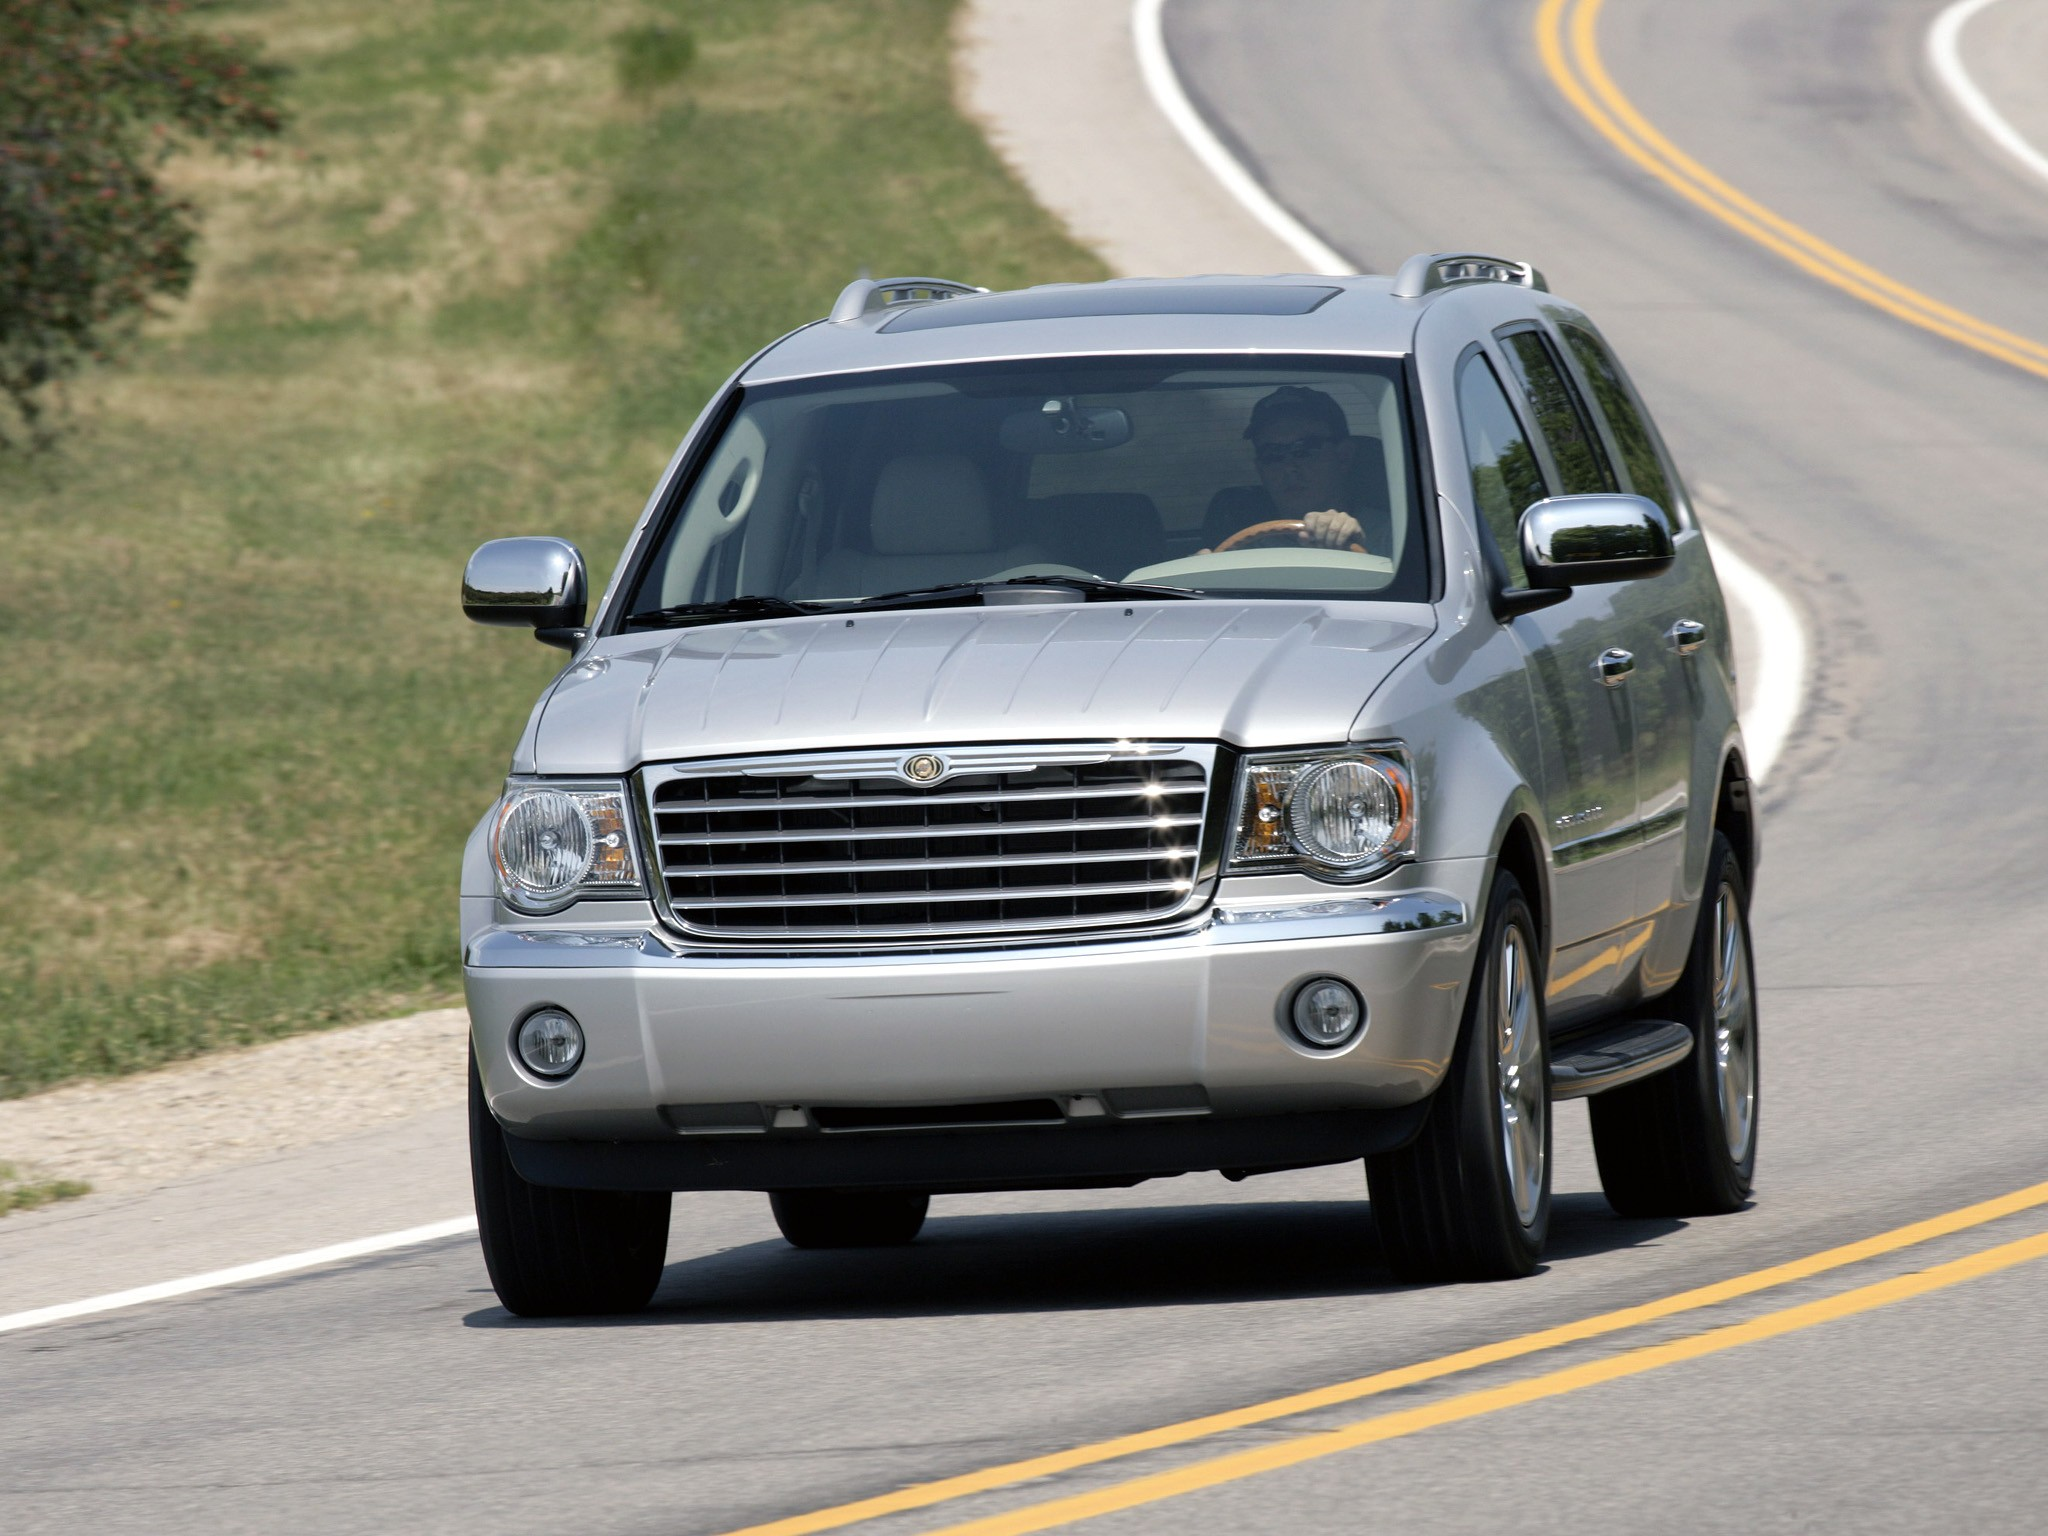 Chrysler Aspen on 2010 Dodge Durango